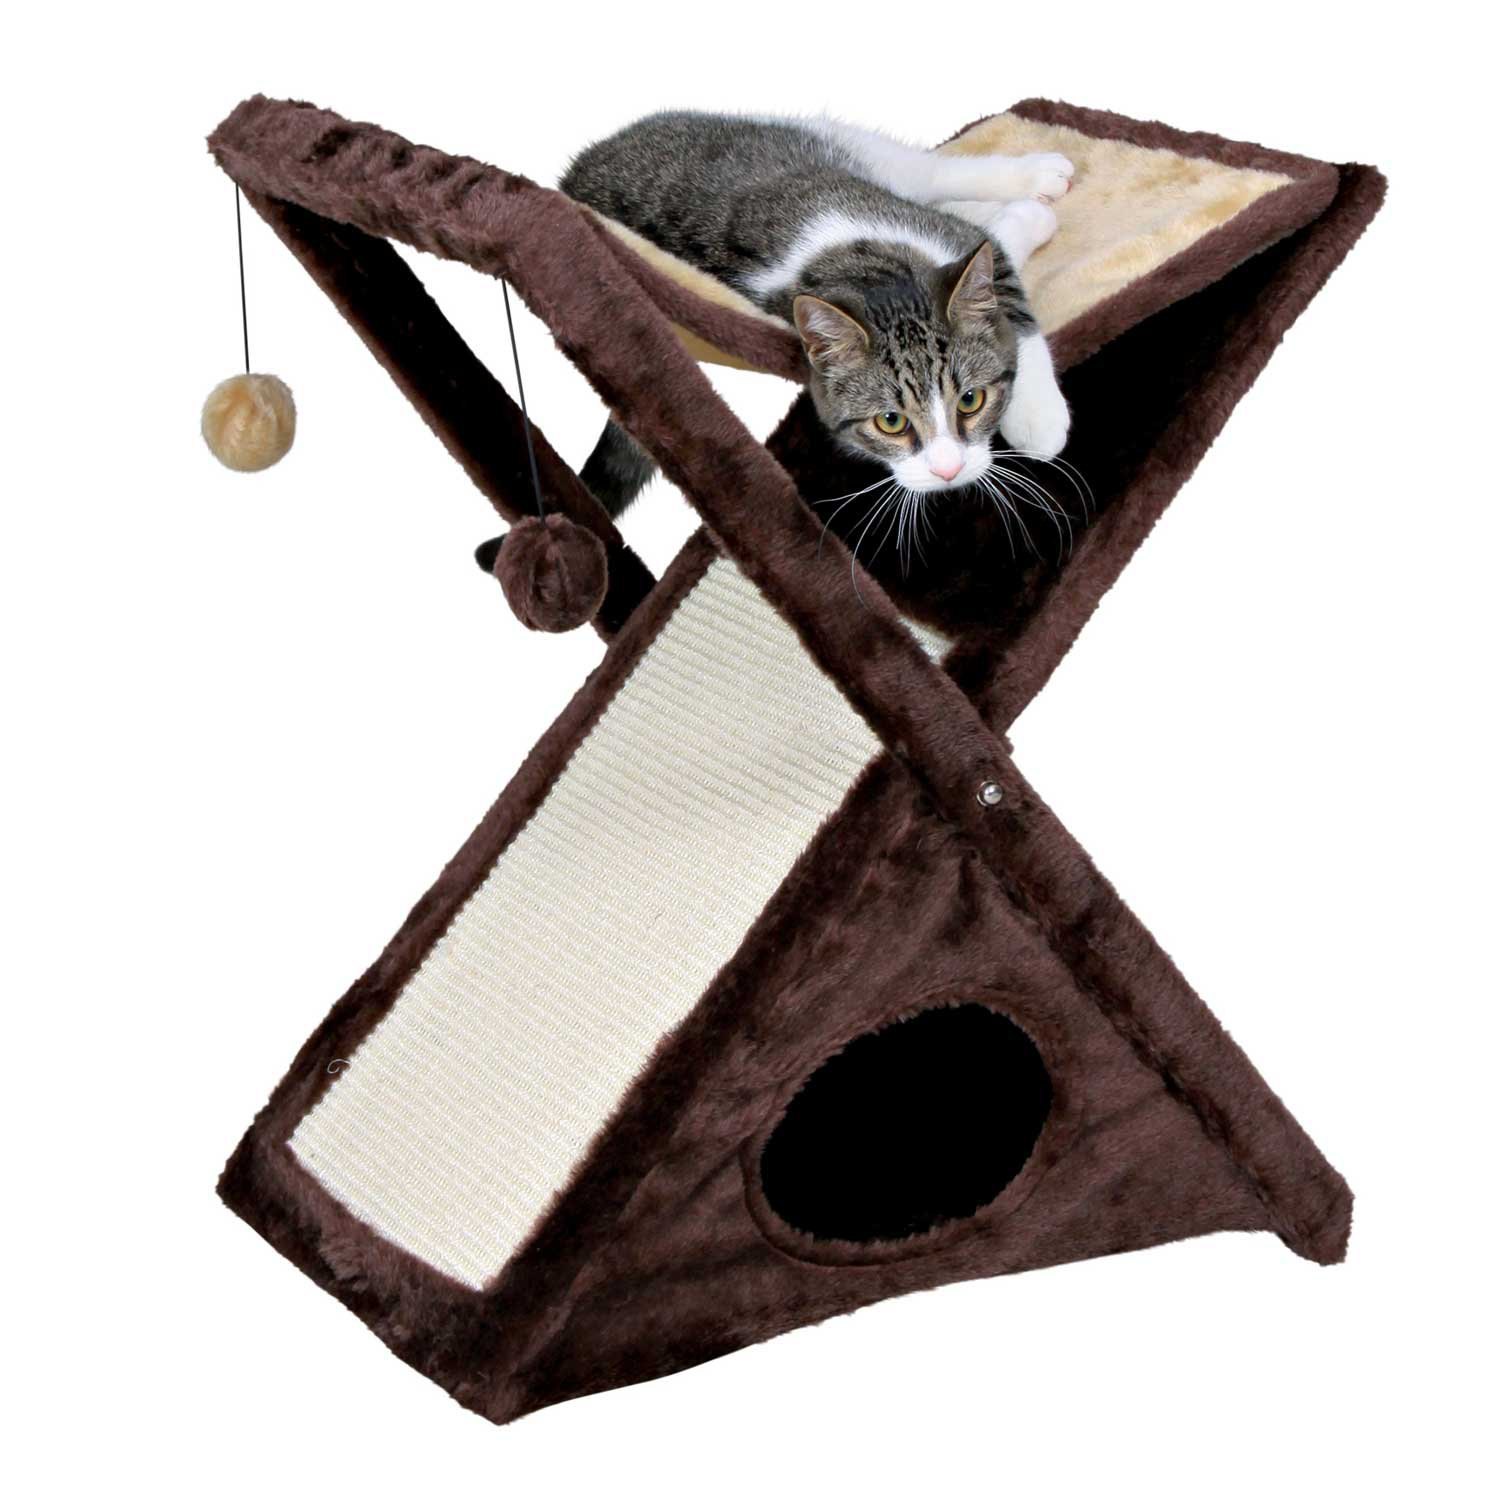 Trixie Miguel Cat Scratching Tower in Beige  Brown 25.5H 13.75 IN